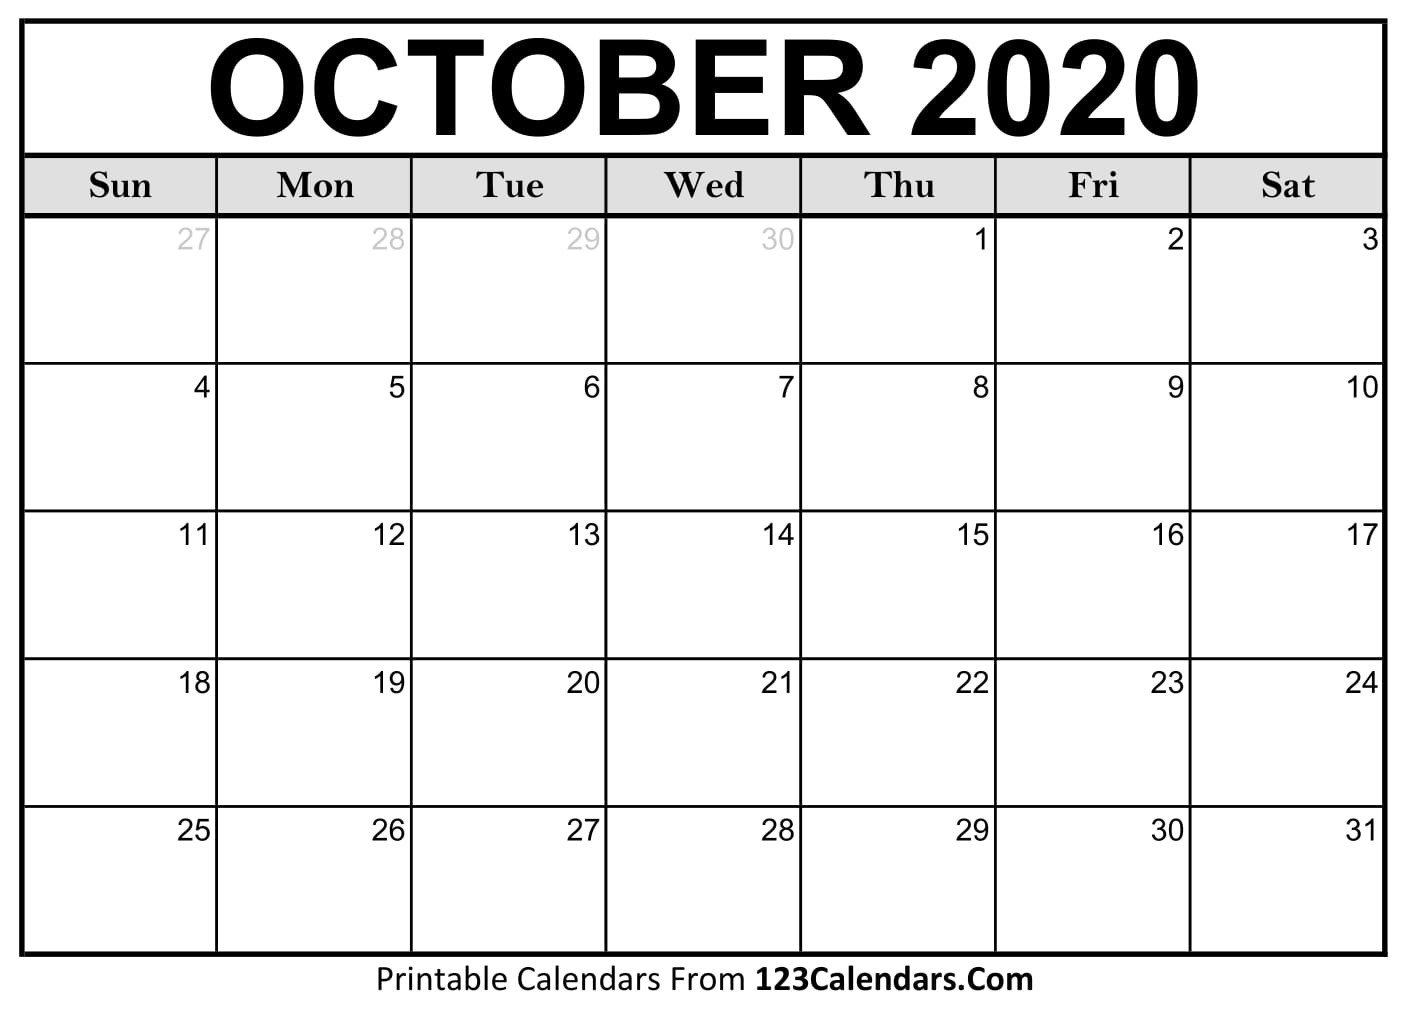 October 2020 Printable Calendar | 123Calendars  Calendar Print Off